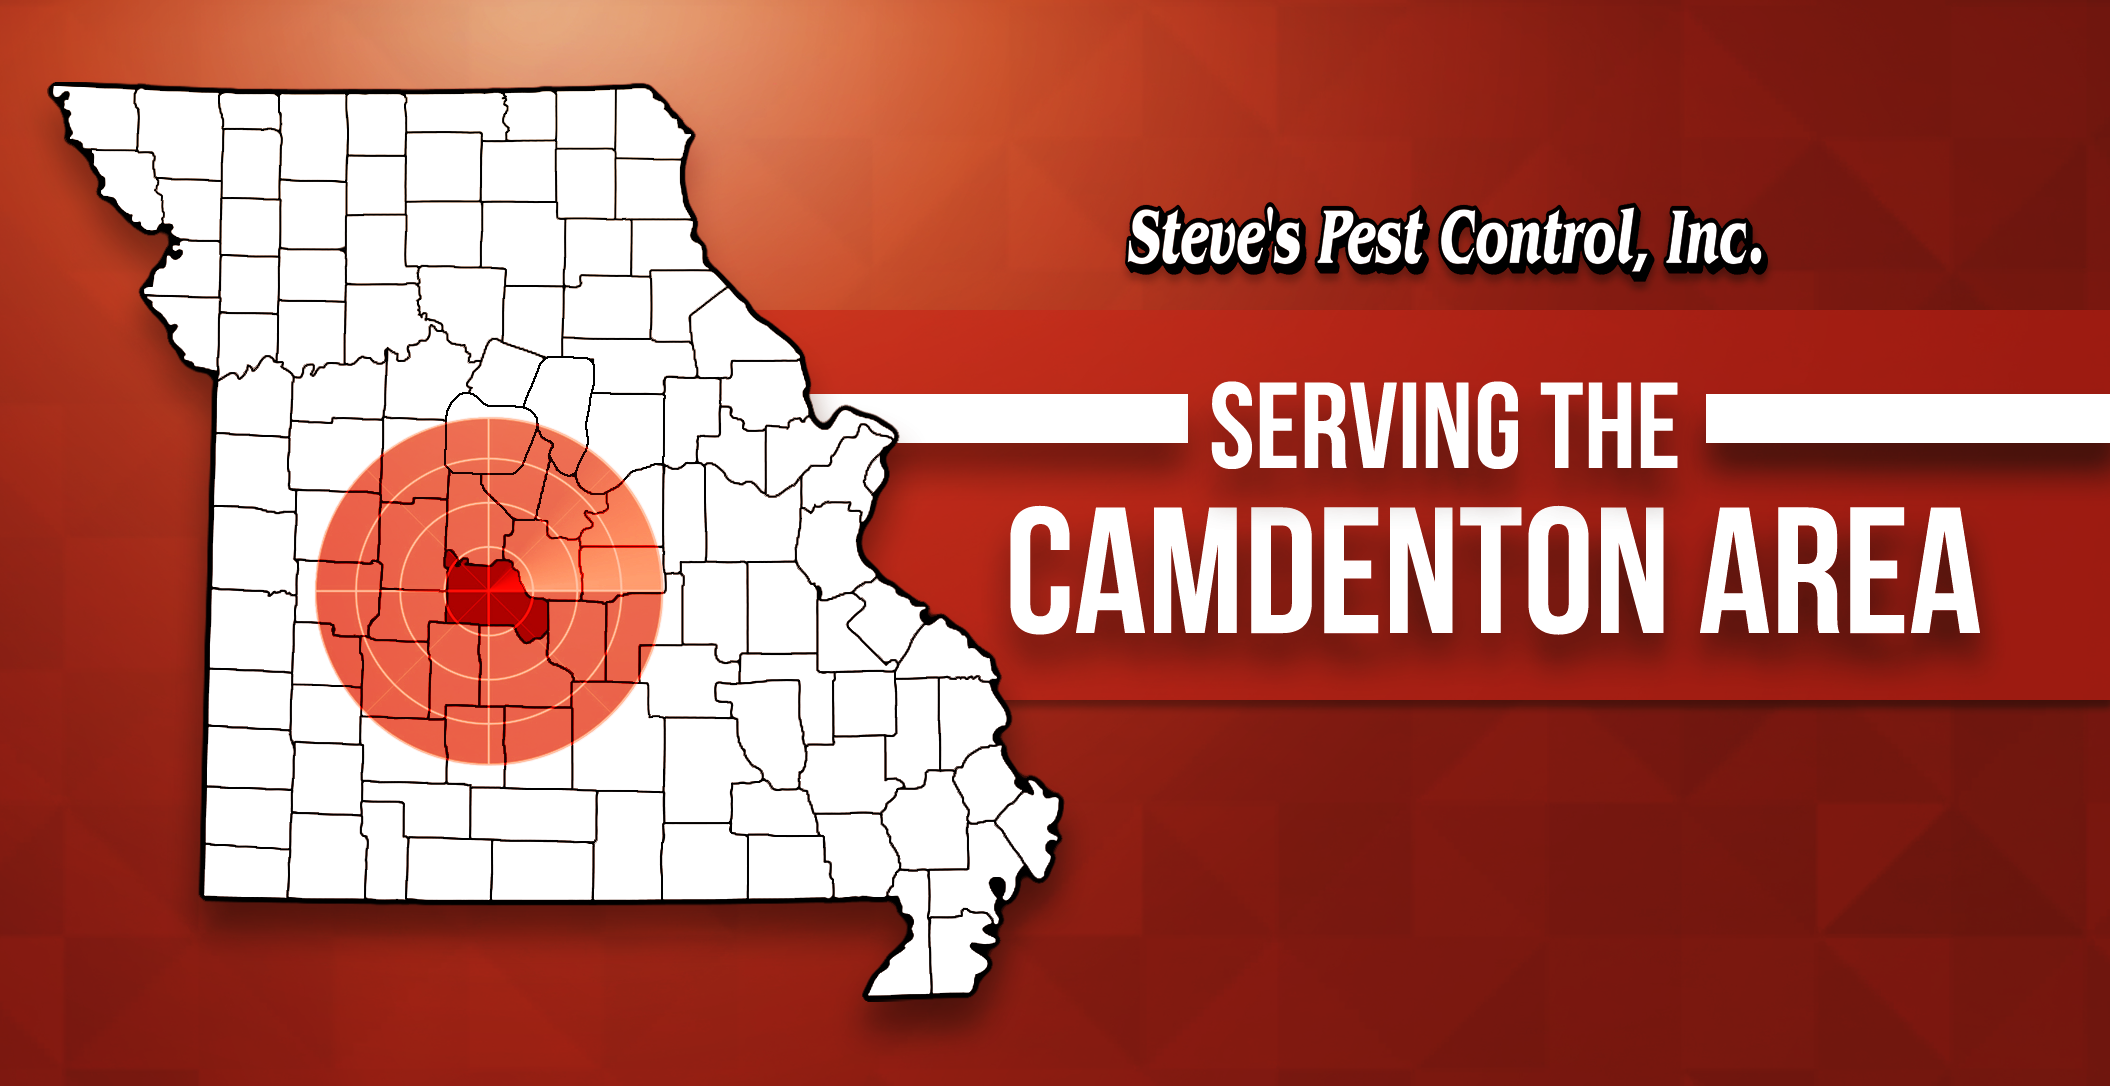 Leading Pest Control Services In Camdenton Mo Steve S Pest Control